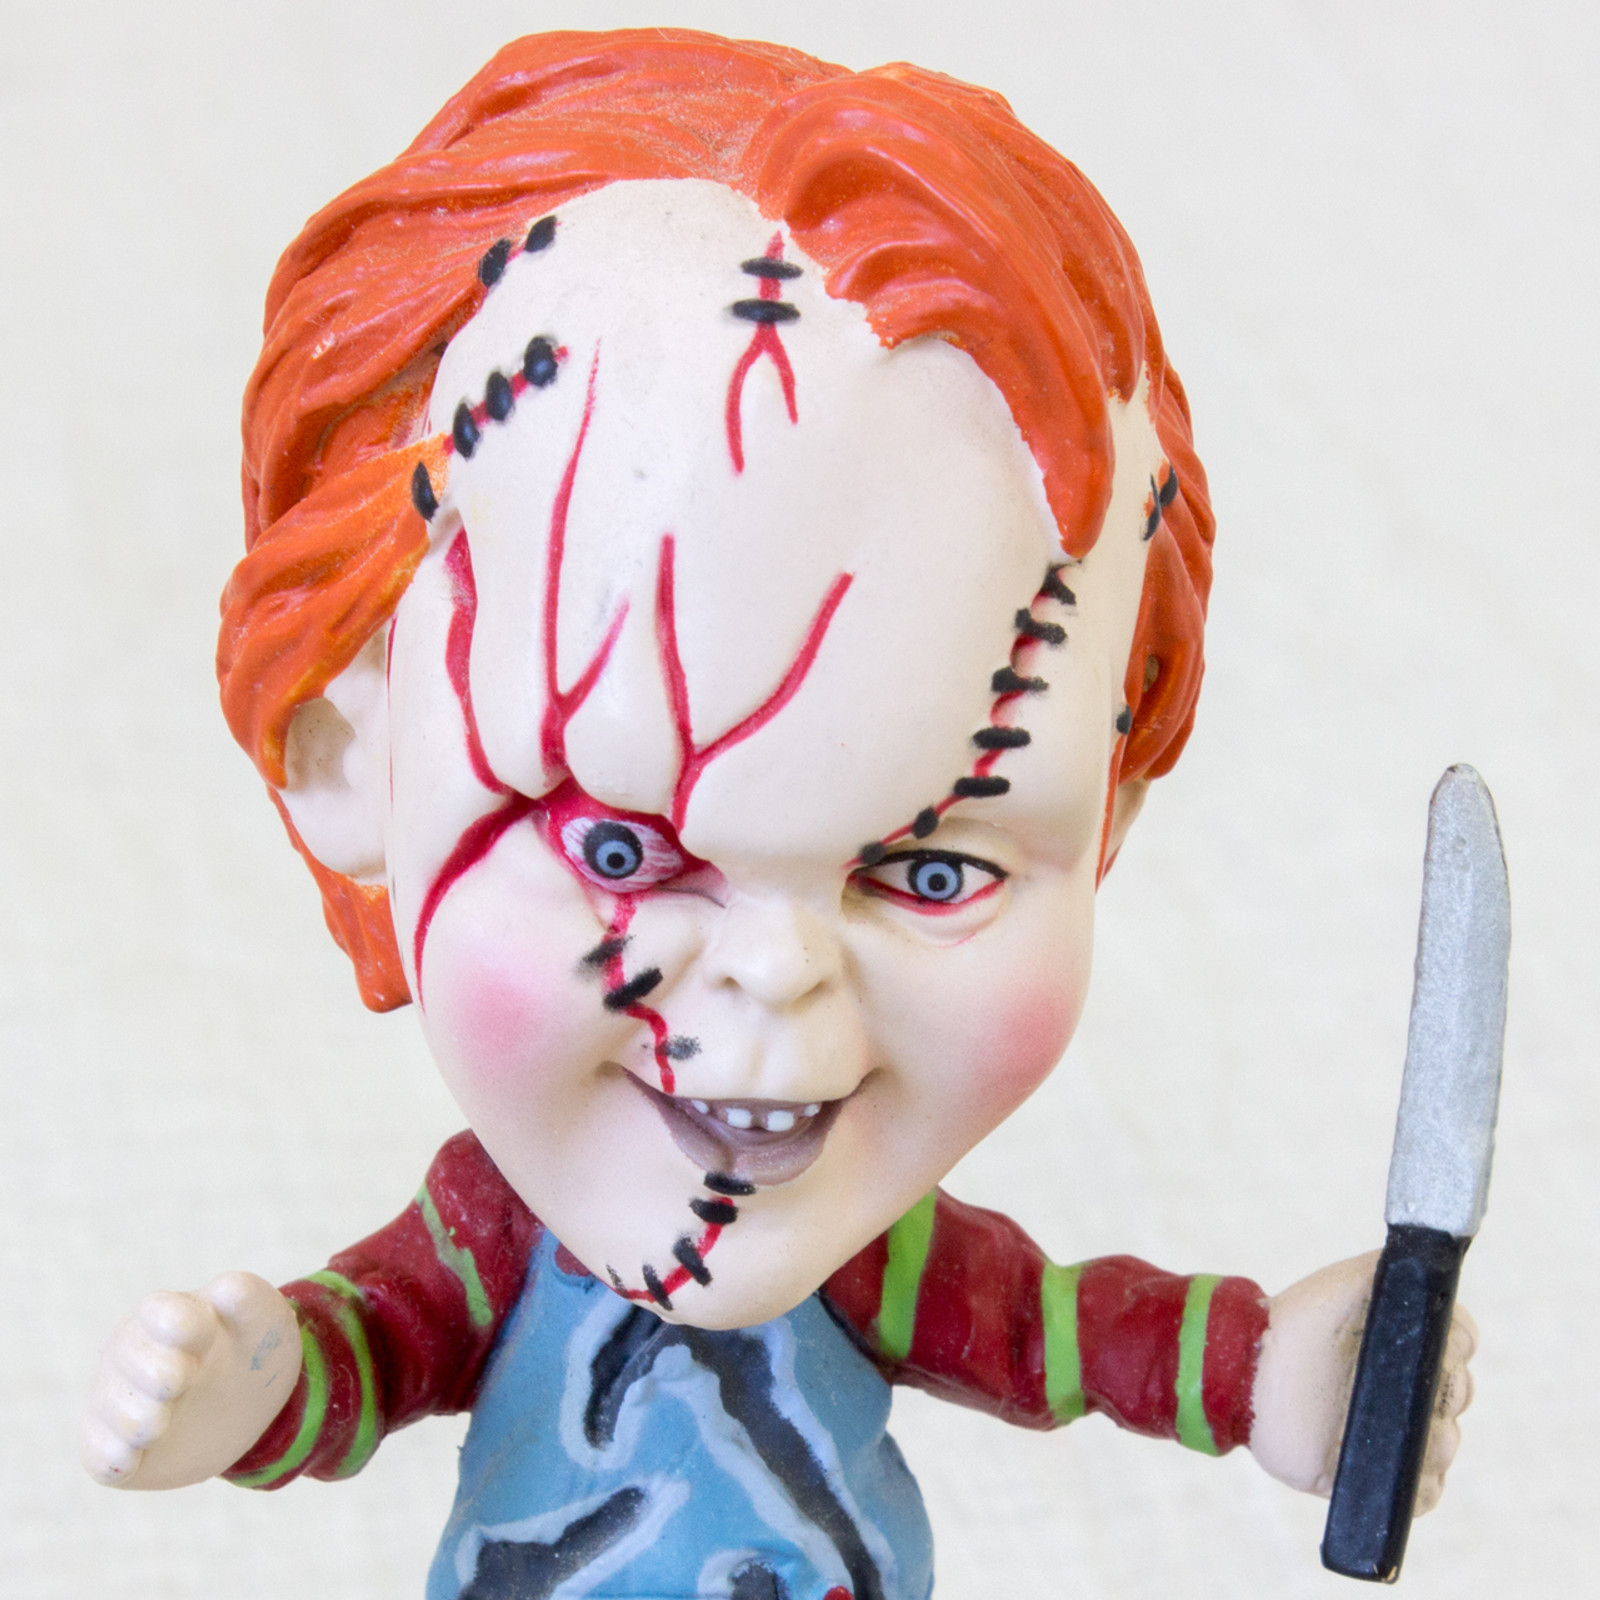 Bride of Chucky Chucky Little Big Head Figure Sideshow Toy /  Child's Play